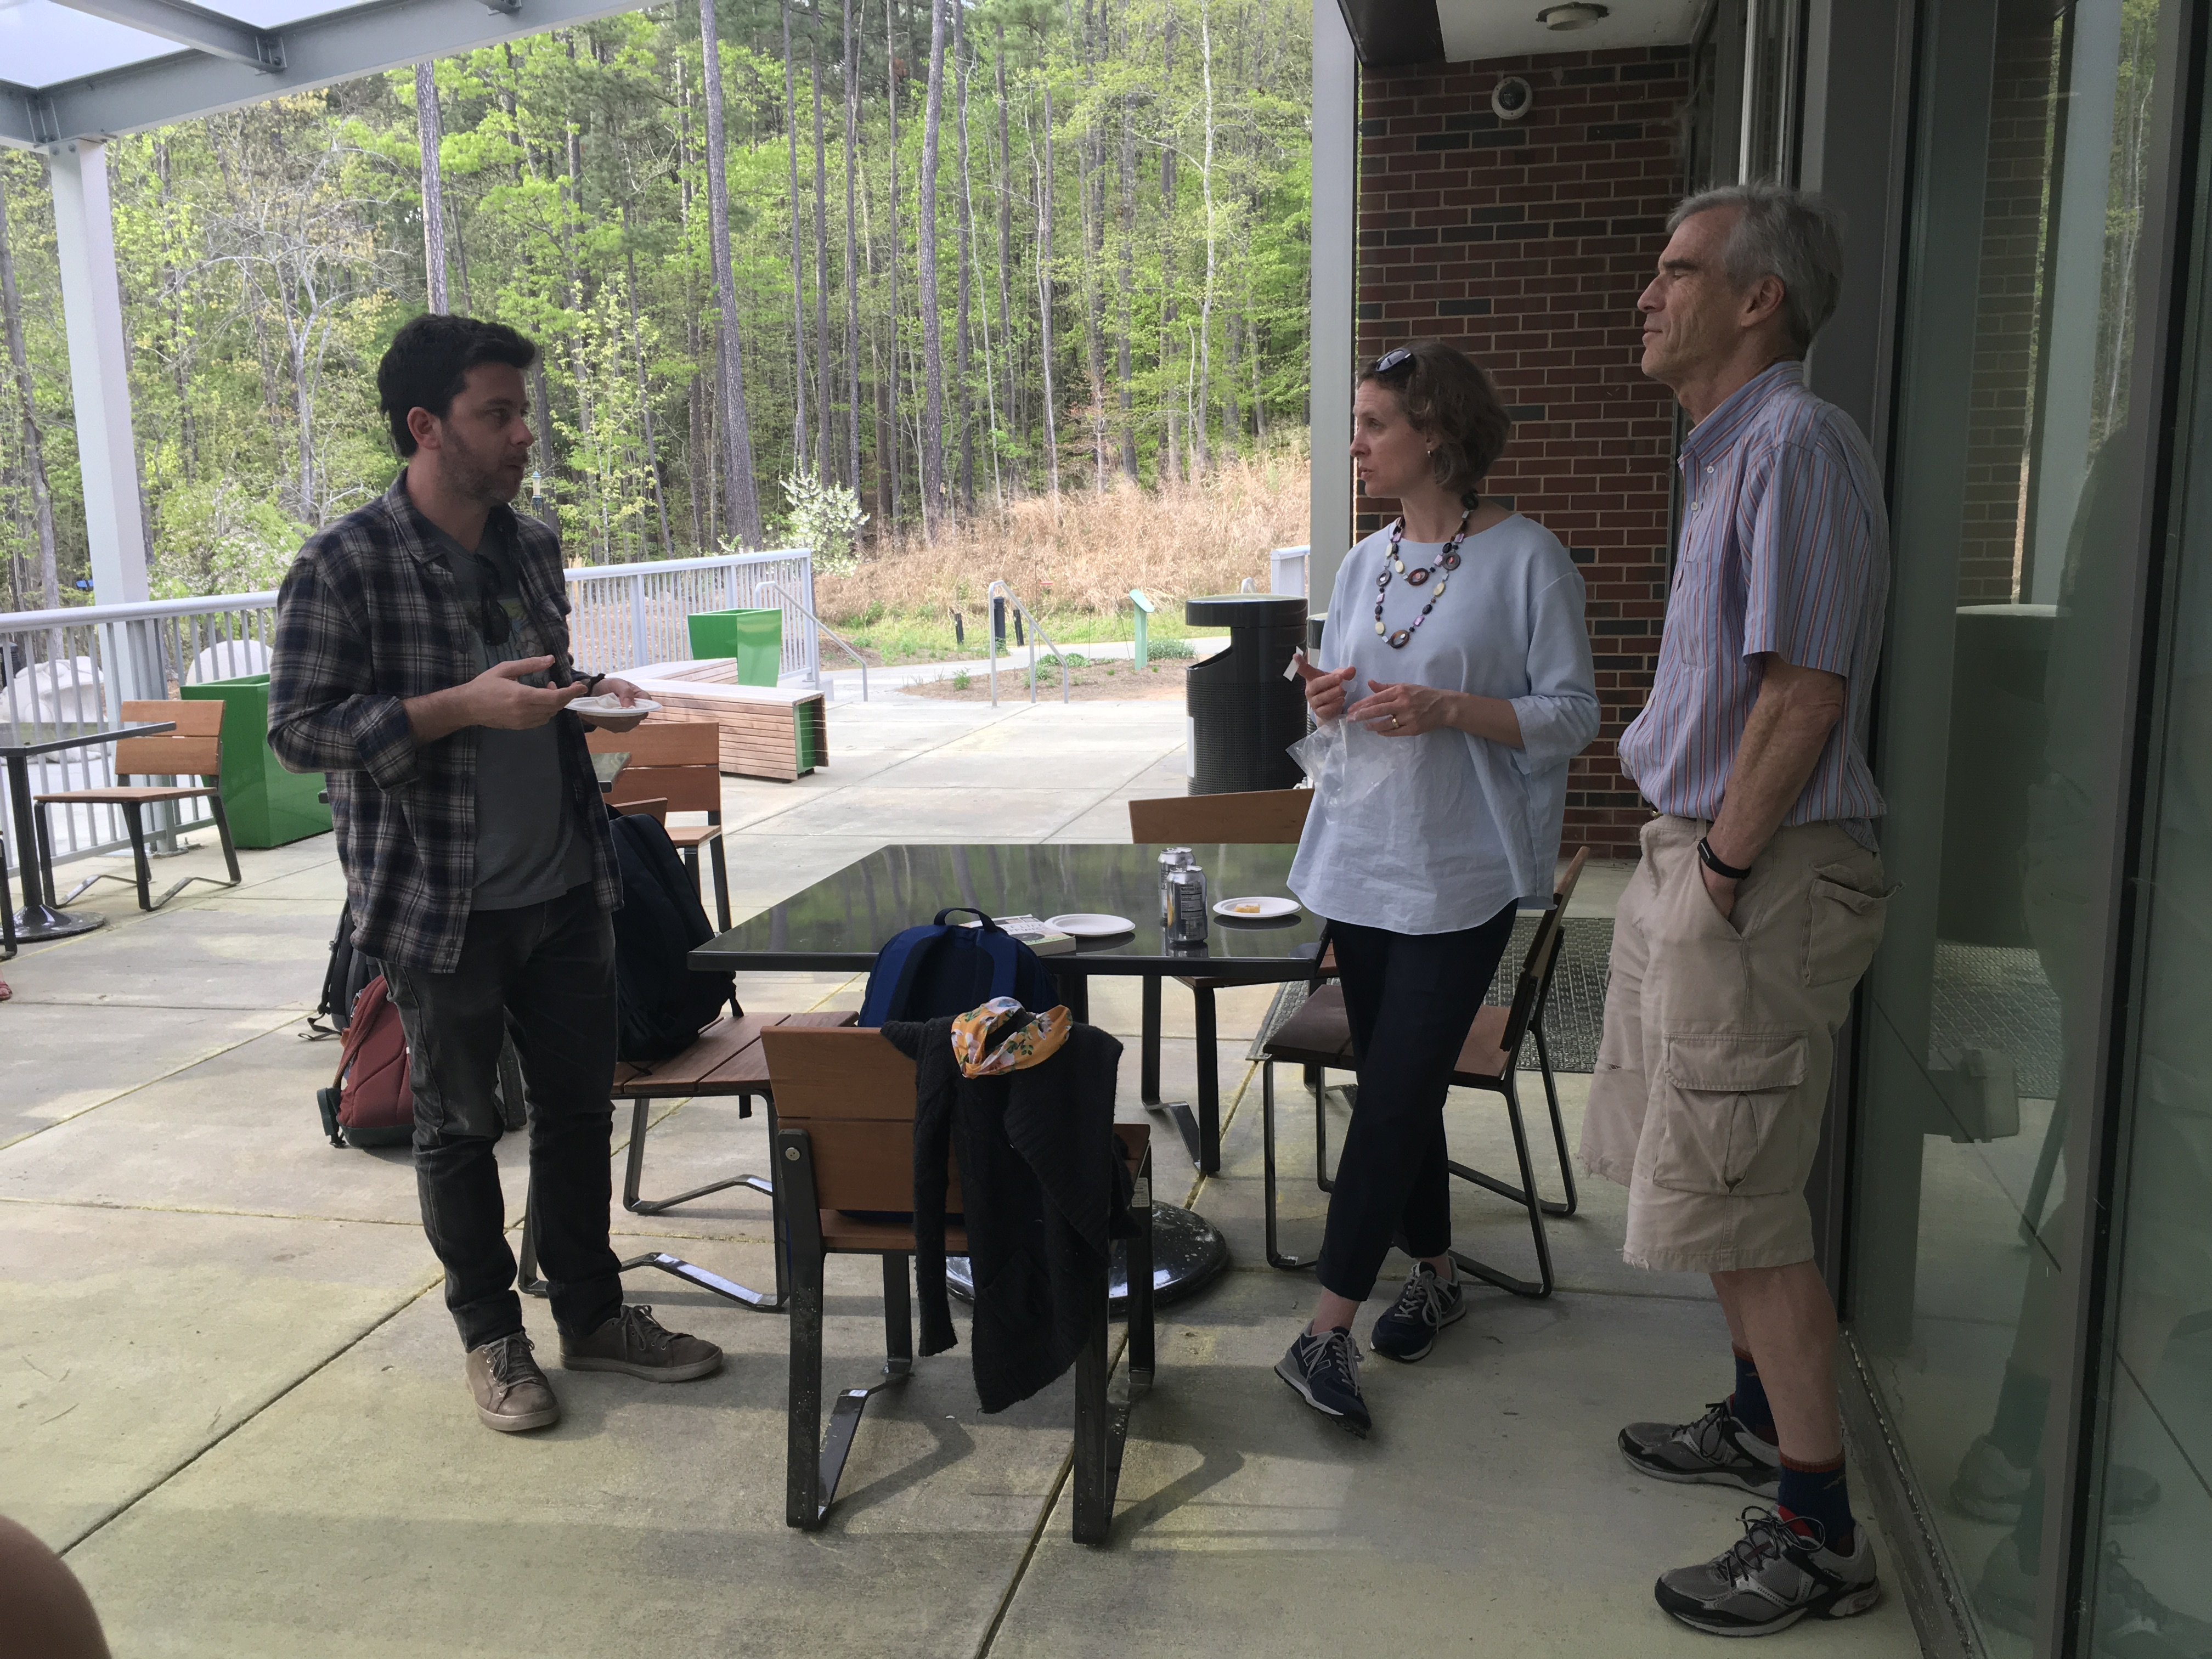 Author David Machado talks to UNC staff on a patio with trees behind him.